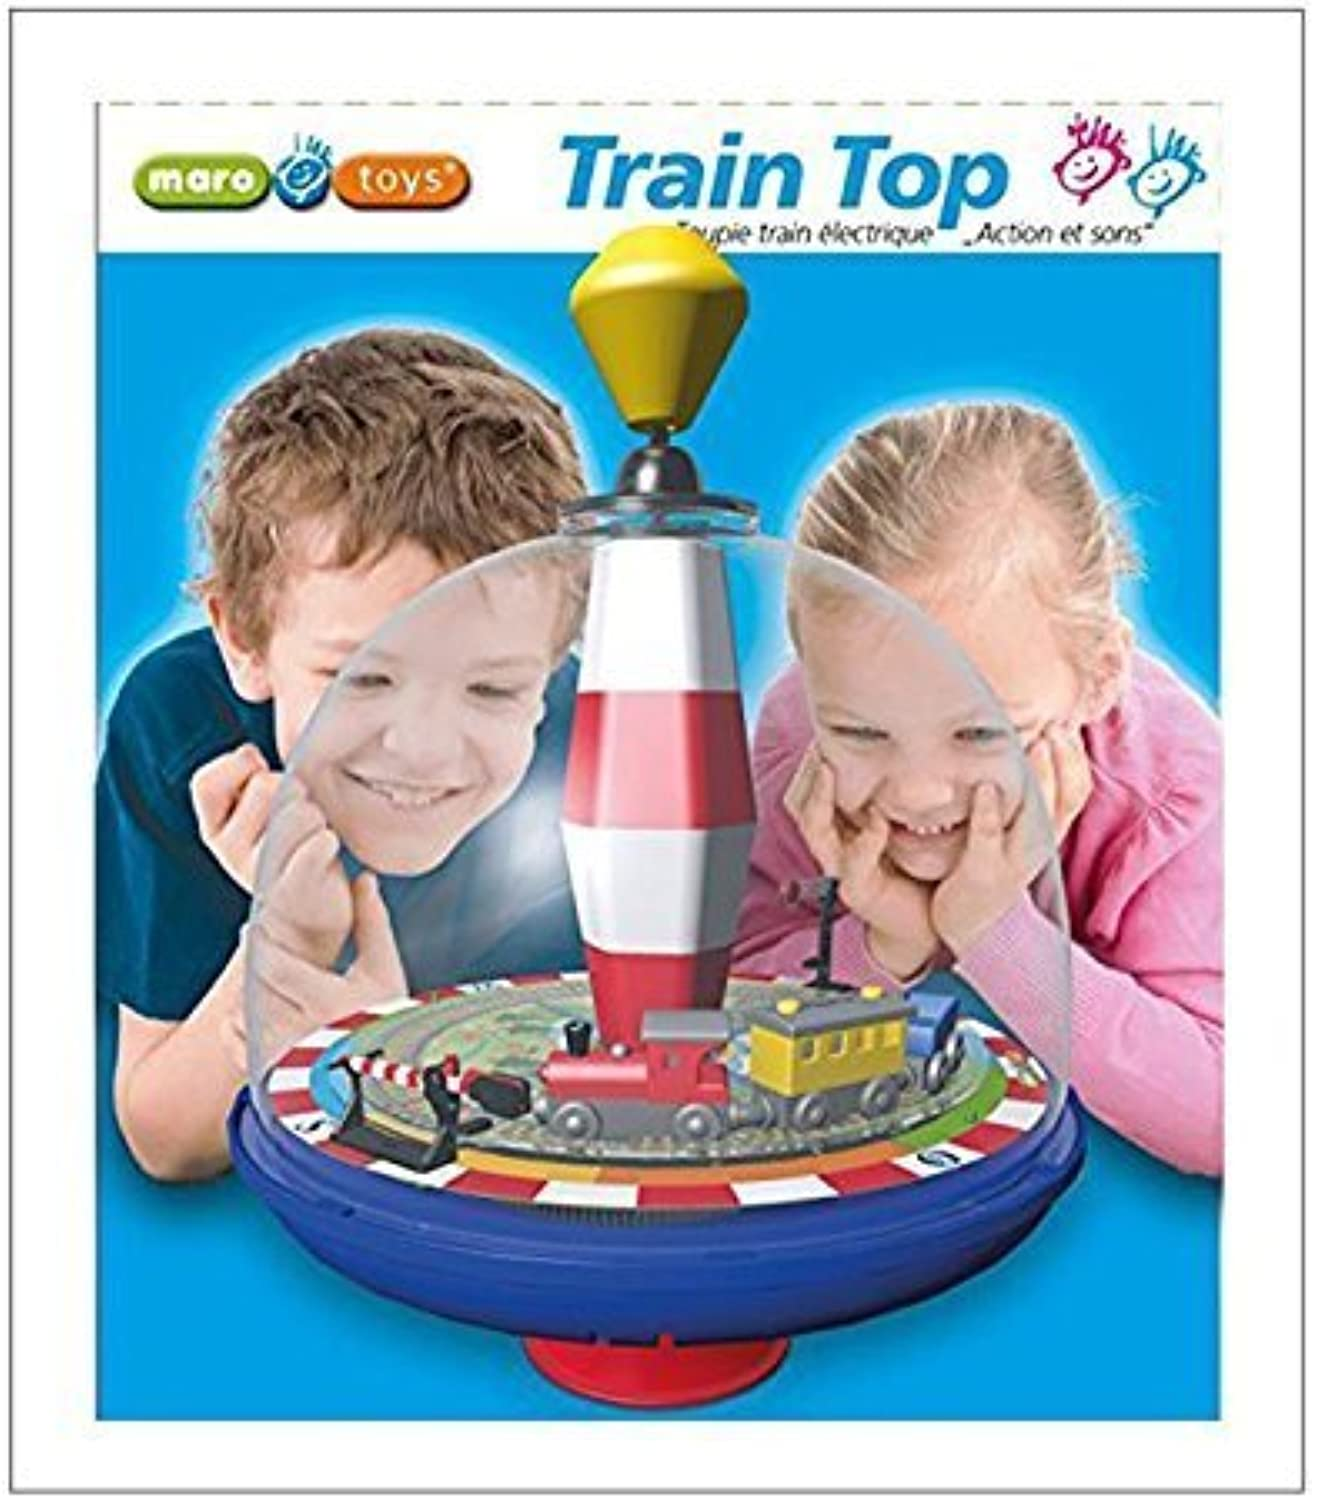 Maro Toys - Train Top, with sound by ToyMarket